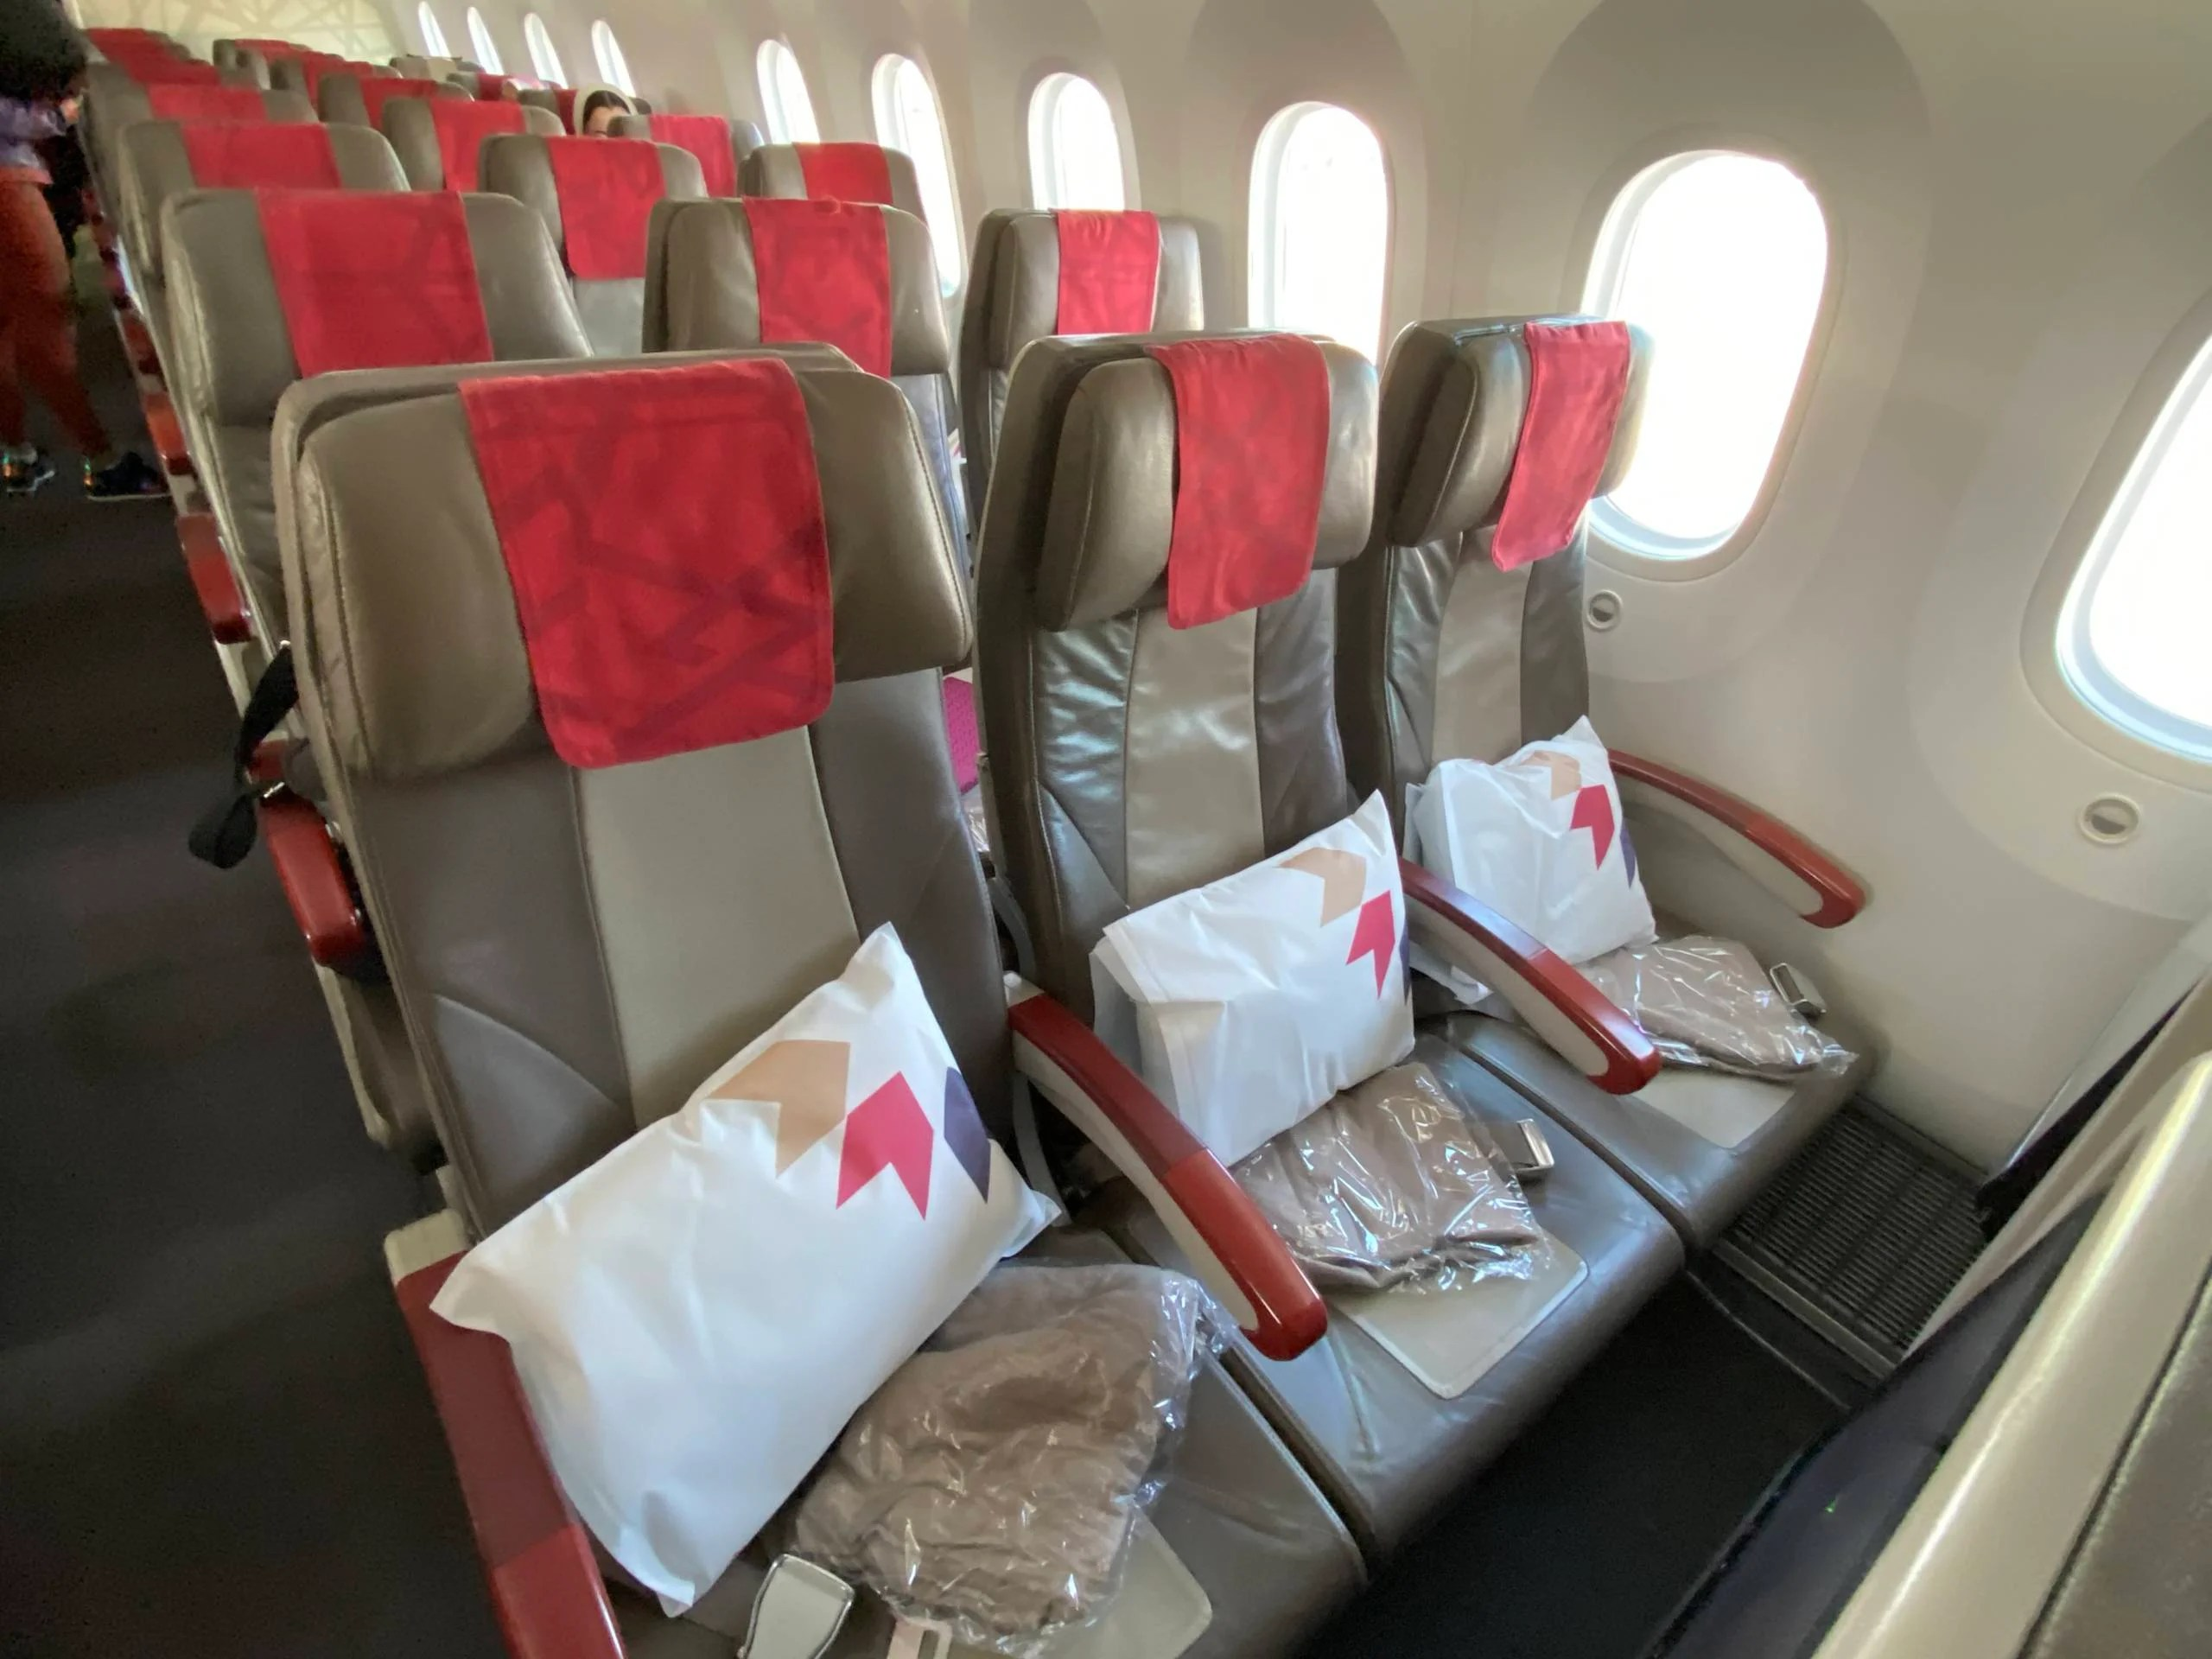 Economy class seats on Royal Air Maroc's Boeing 787-8. (Photo by Benét J. Wilson/The Points Guy)